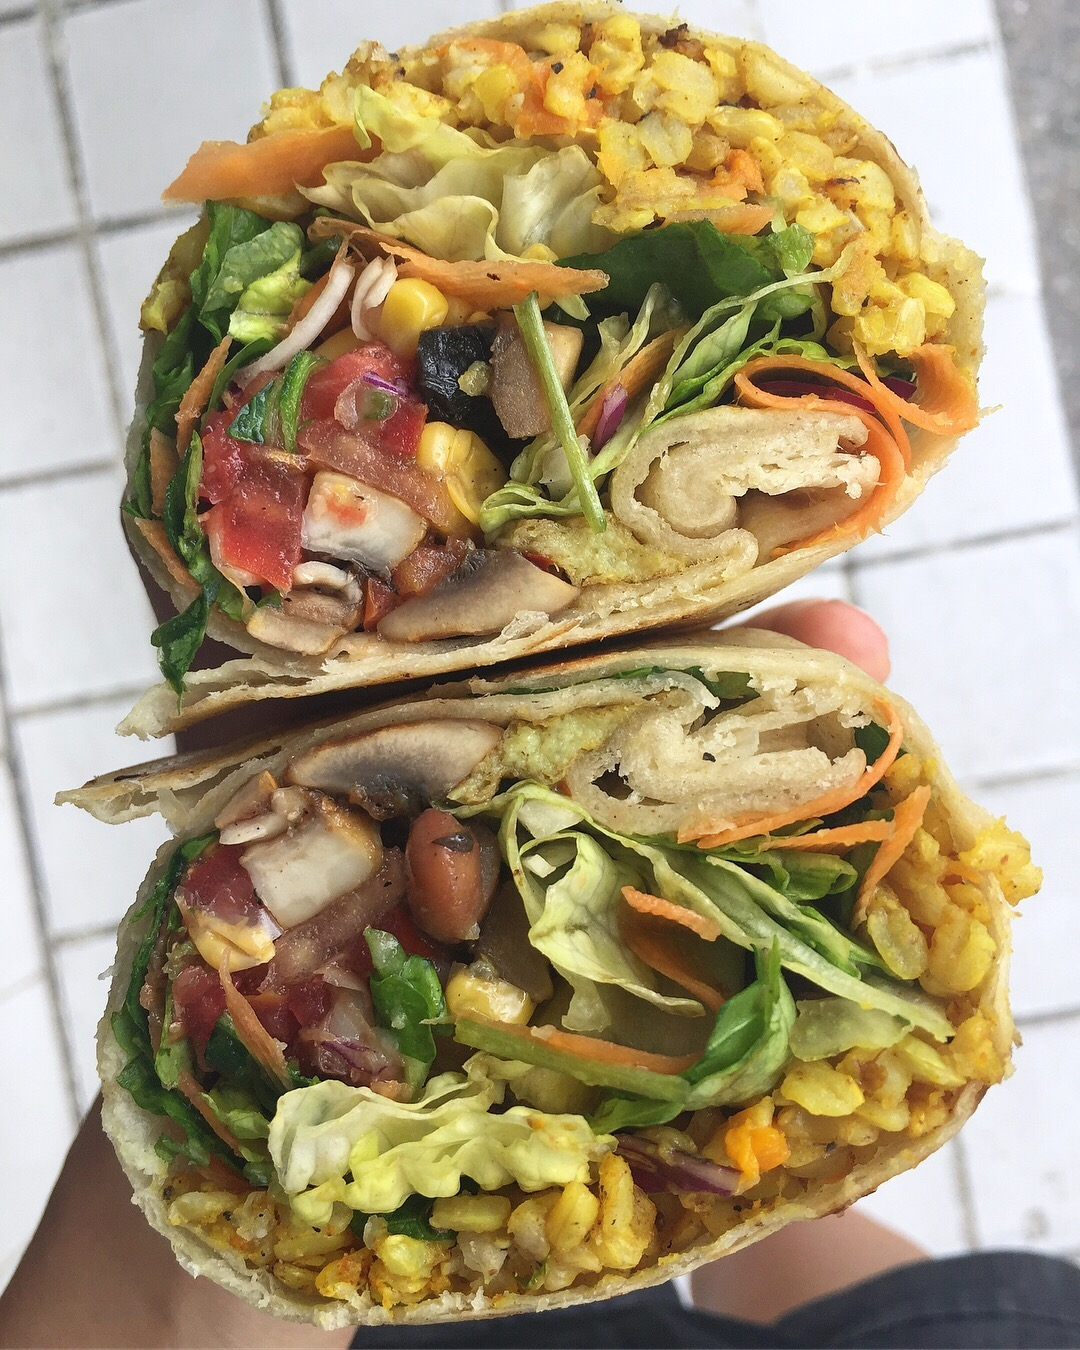 Burrito with everything at Veggie Table.